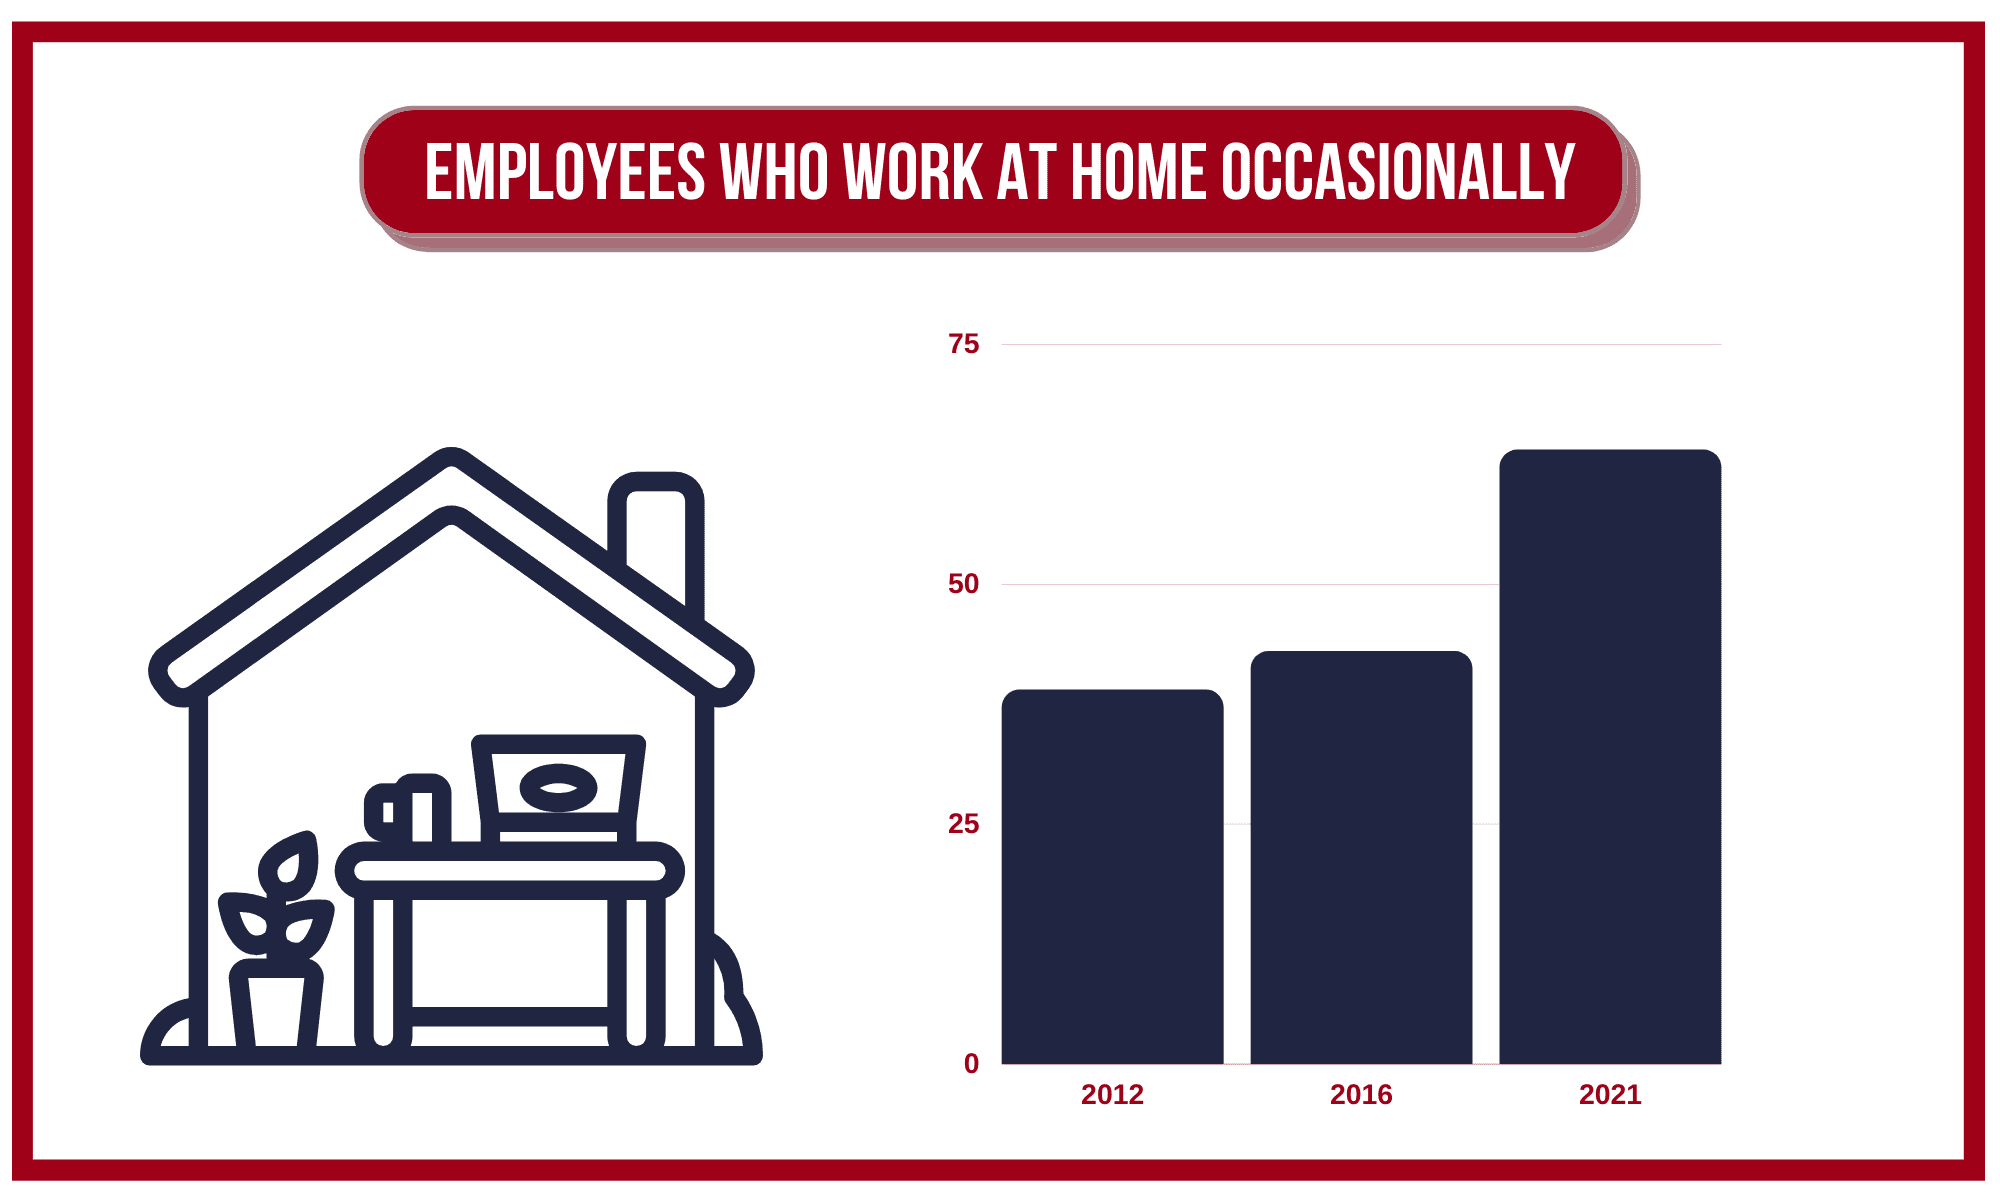 The number of people who work at home occasionally over time.